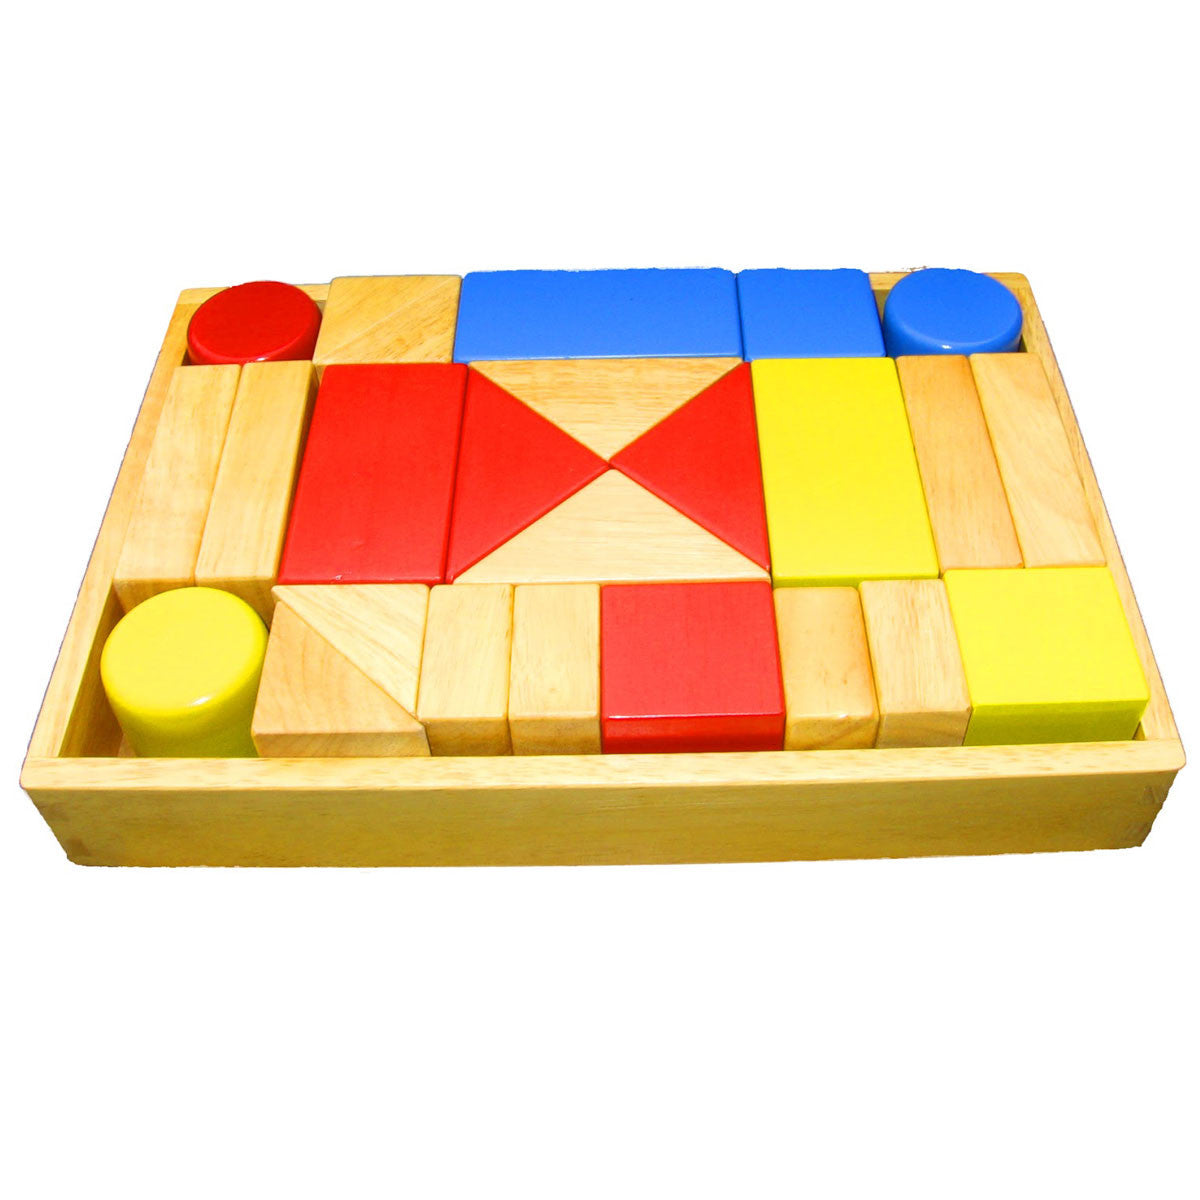 QToys Wooden Sound Blocks QToys Wooden Blocks 25 Pieces at Little Earth Nest Eco Shop